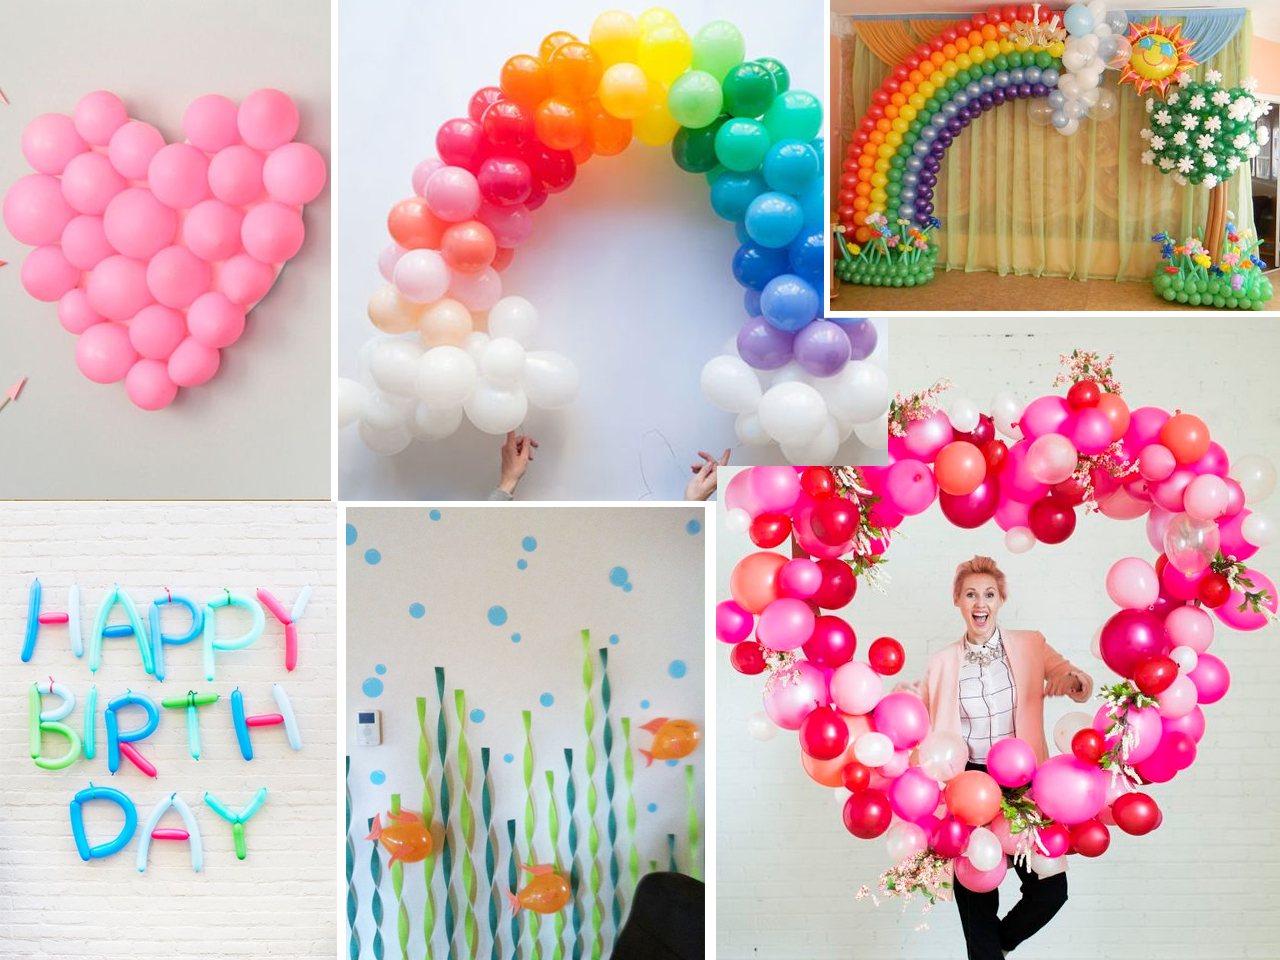 Descubre c mo decorar con globos con estas fant sticas ideas - Globos para decorar ...